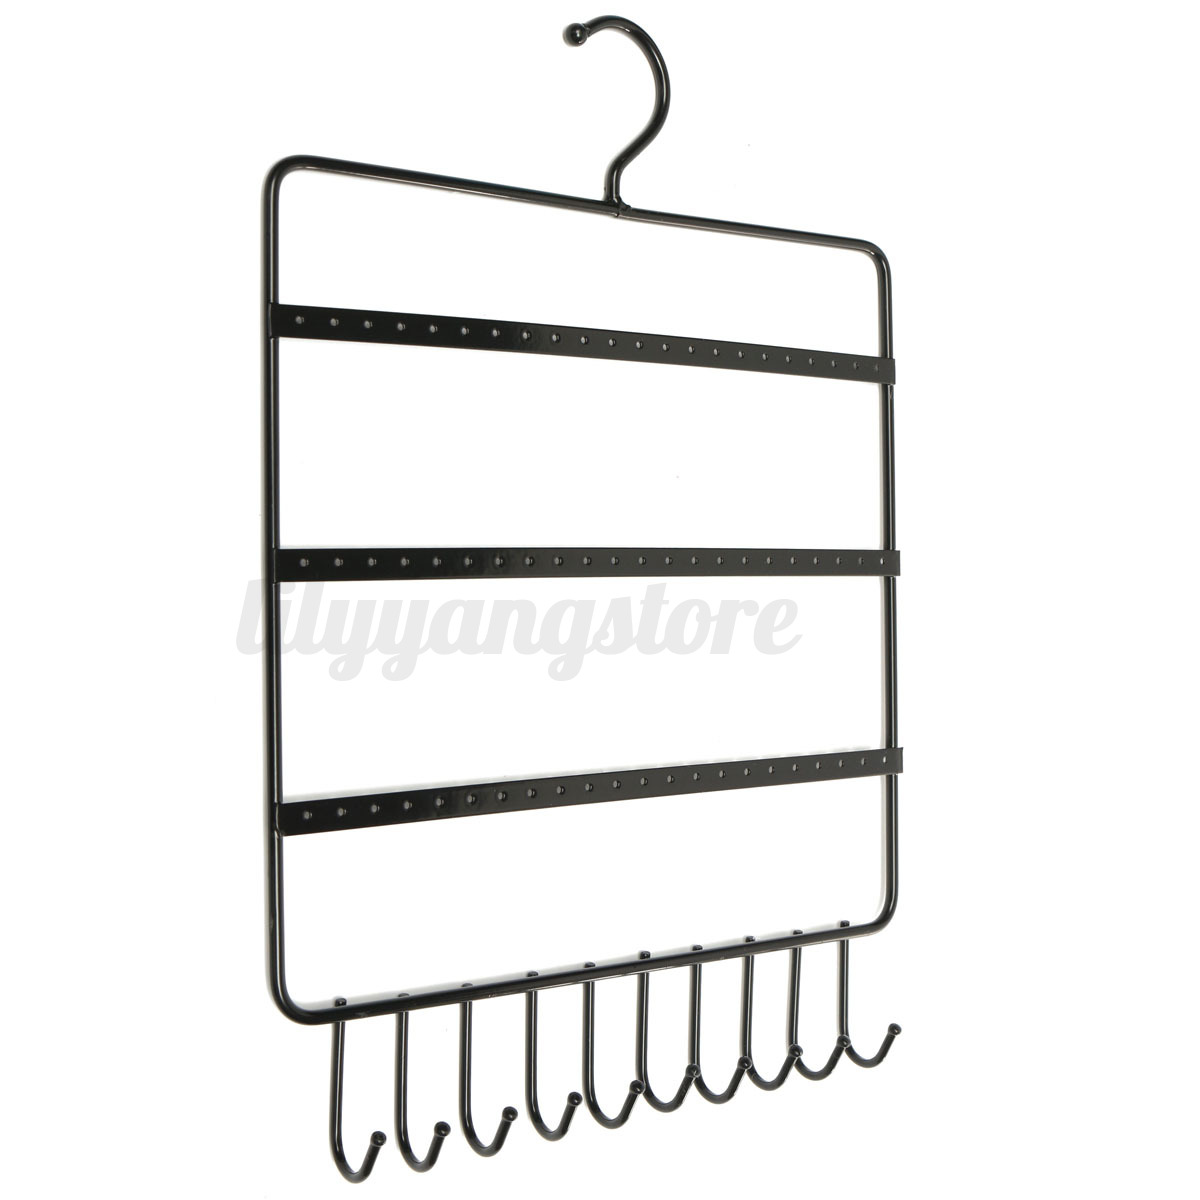 Iron Wall Earring Necklace Stable Rack Jewelry Display Organizer Hanging Holder